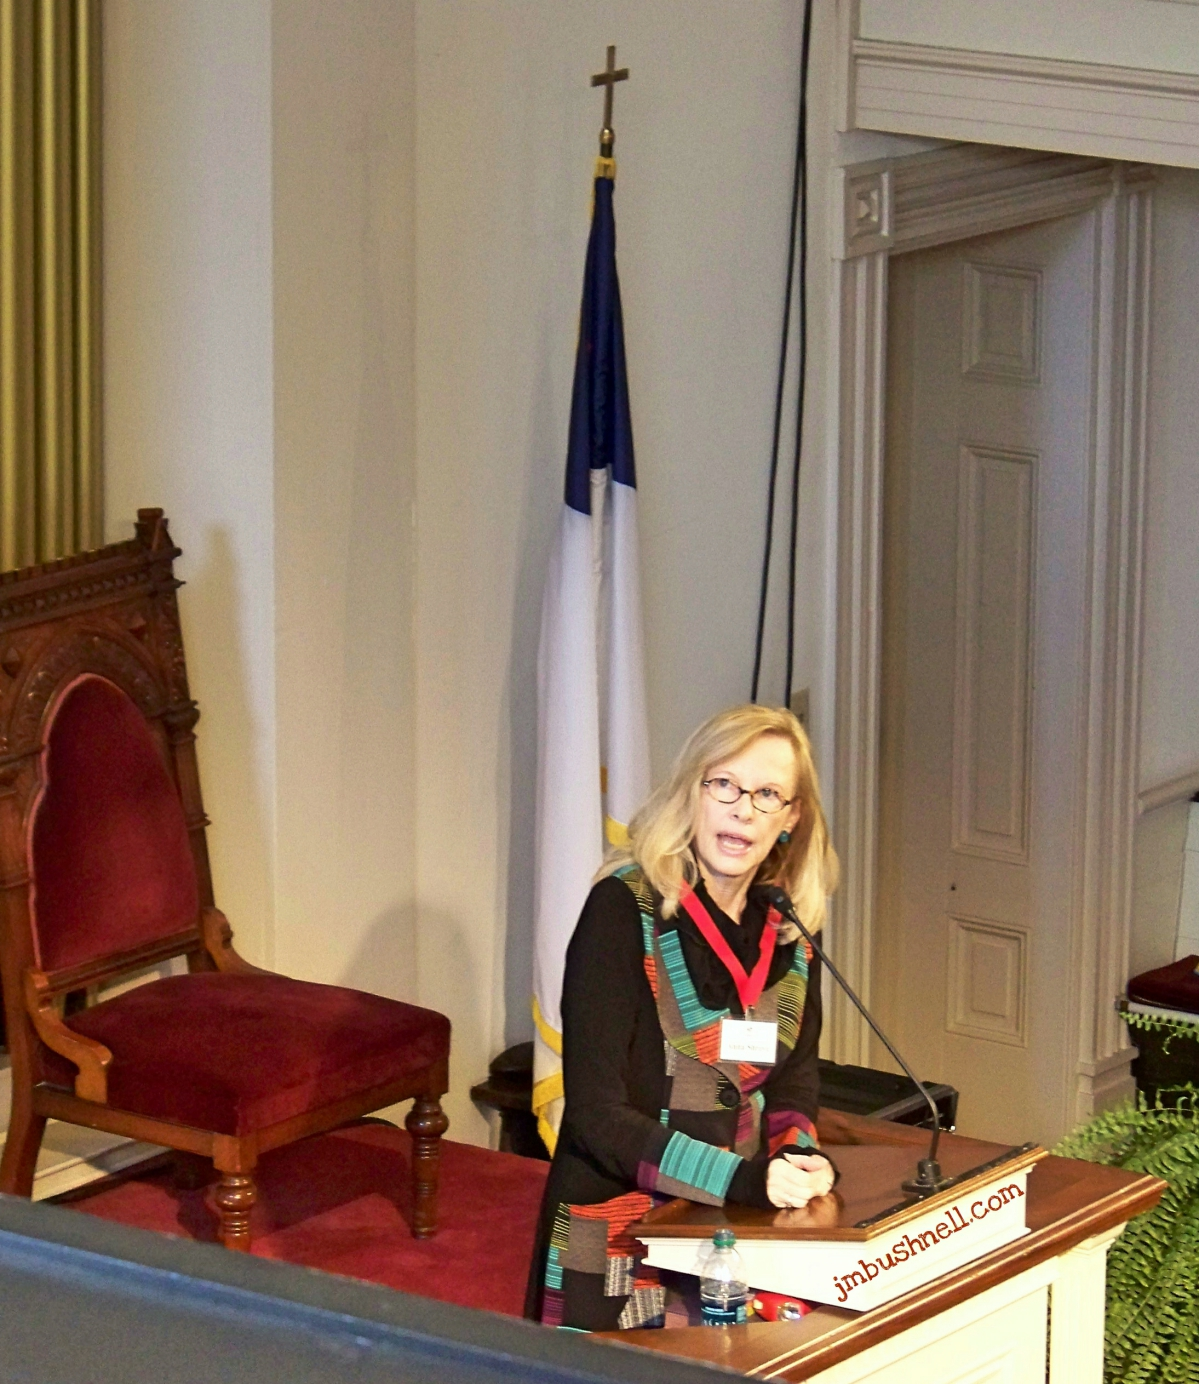 Anita Shreve speaking at the Savannah Book Festival 2014